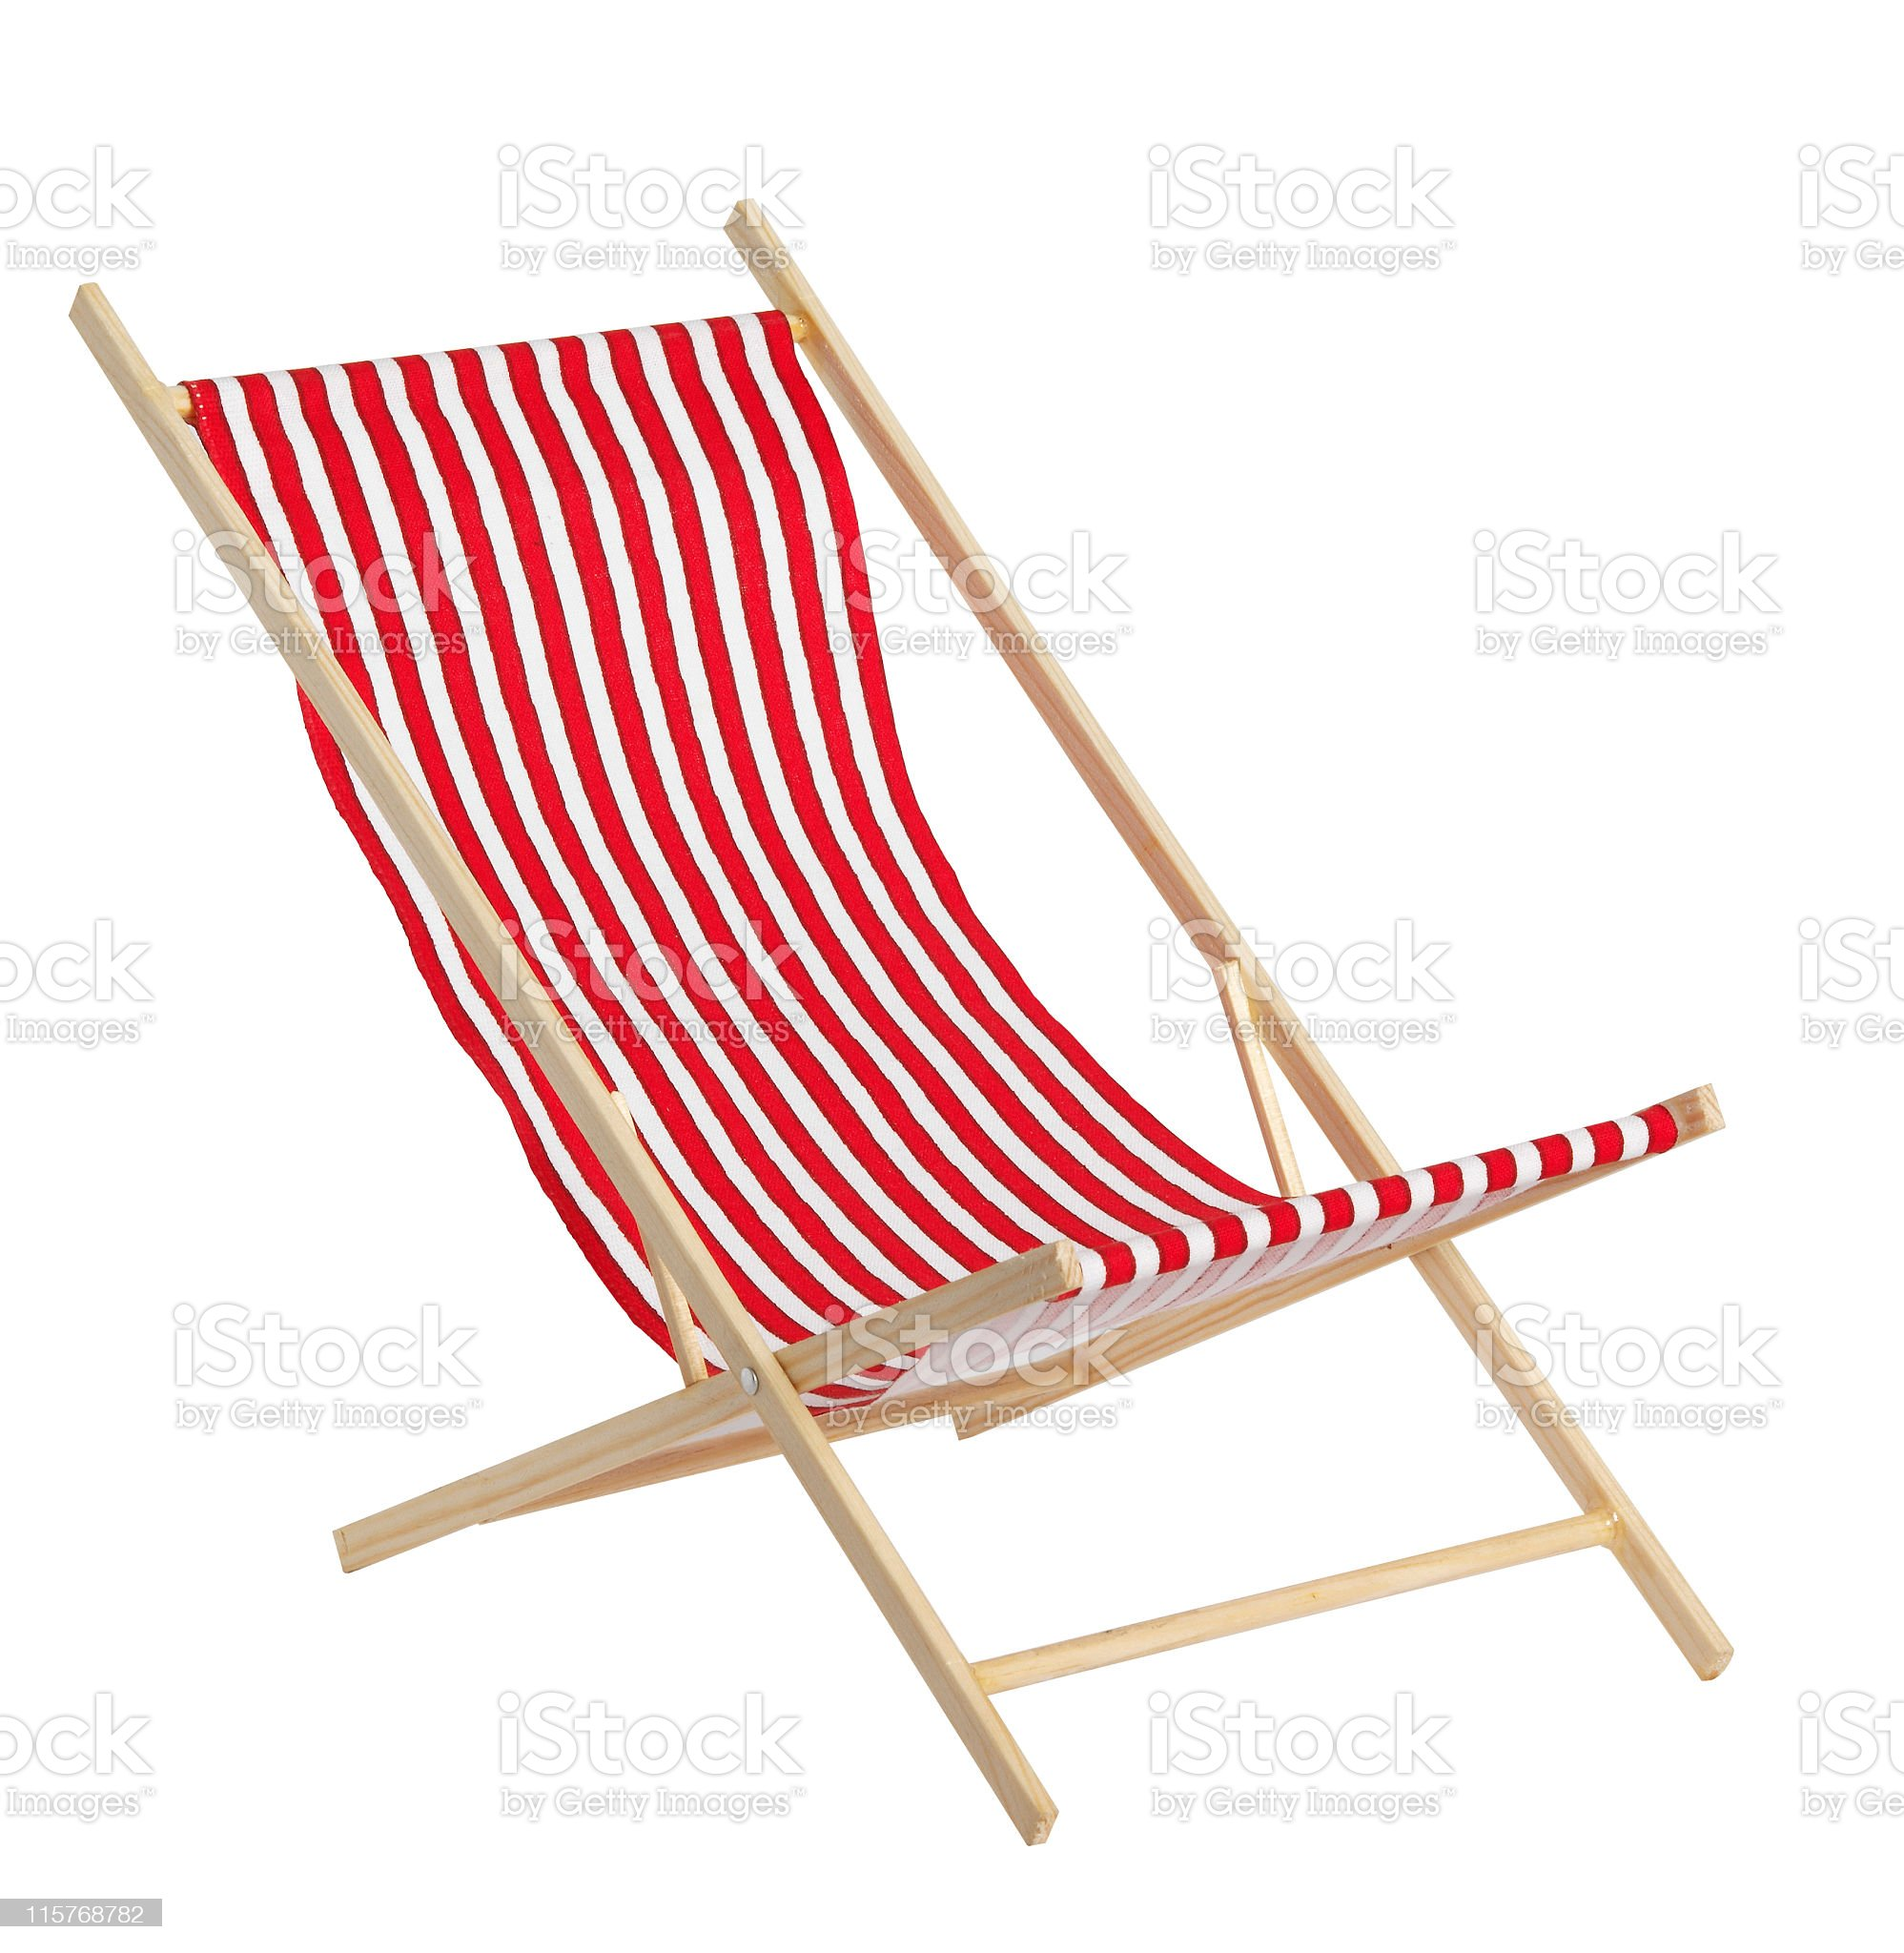 Red toys chaise longue on white background royalty-free stock photo